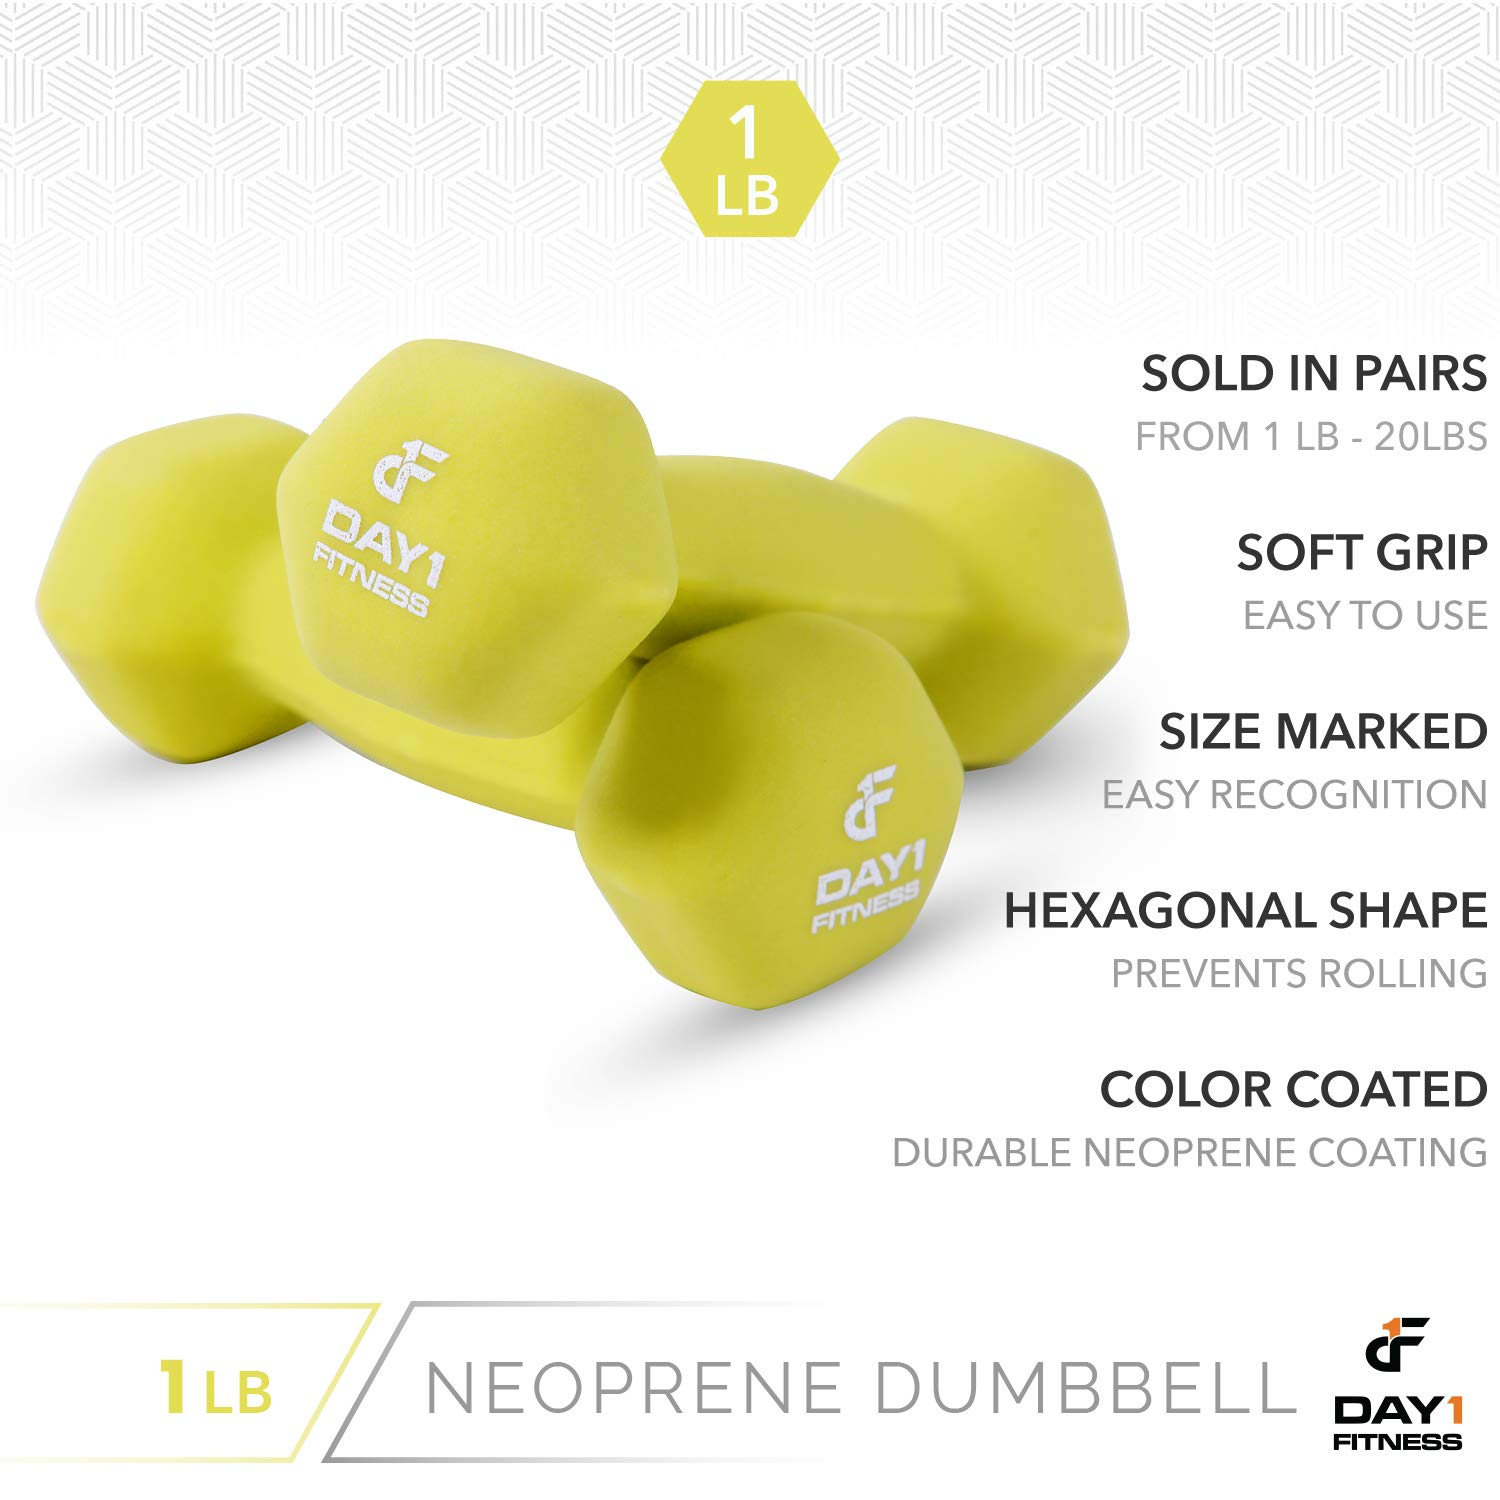 12 WEIGHT OPTIONS Color Coded Hexagon Shape Easy to Read Hand Weights for Muscle Toning Neoprene Dumbbell Pairs by Day 1 Fitness Weight Loss 1-20 LBS Strength Building Non-Slip